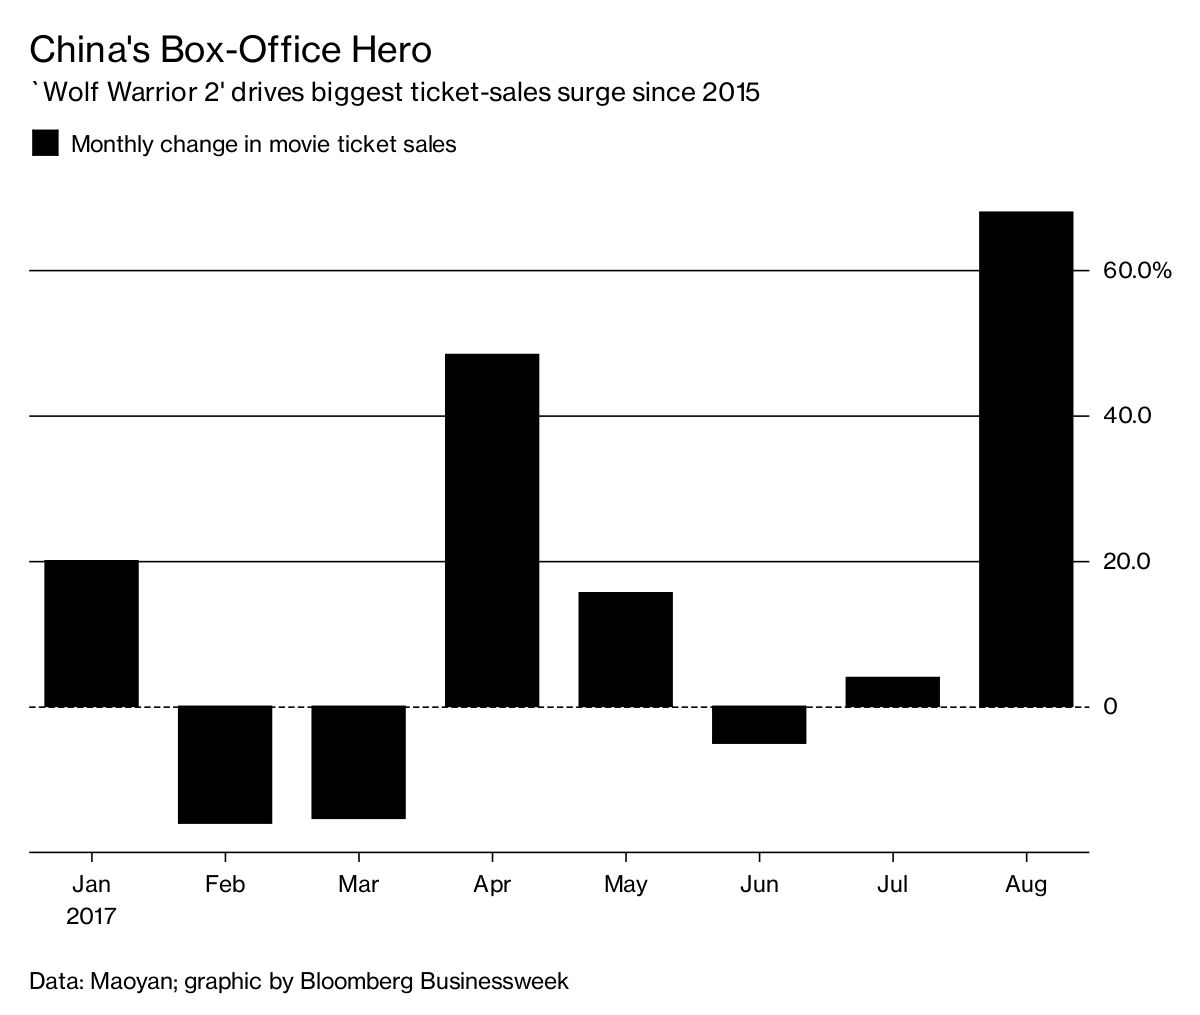 'Wolf Warrior 2' Powers Best China Box-Office Gain Since